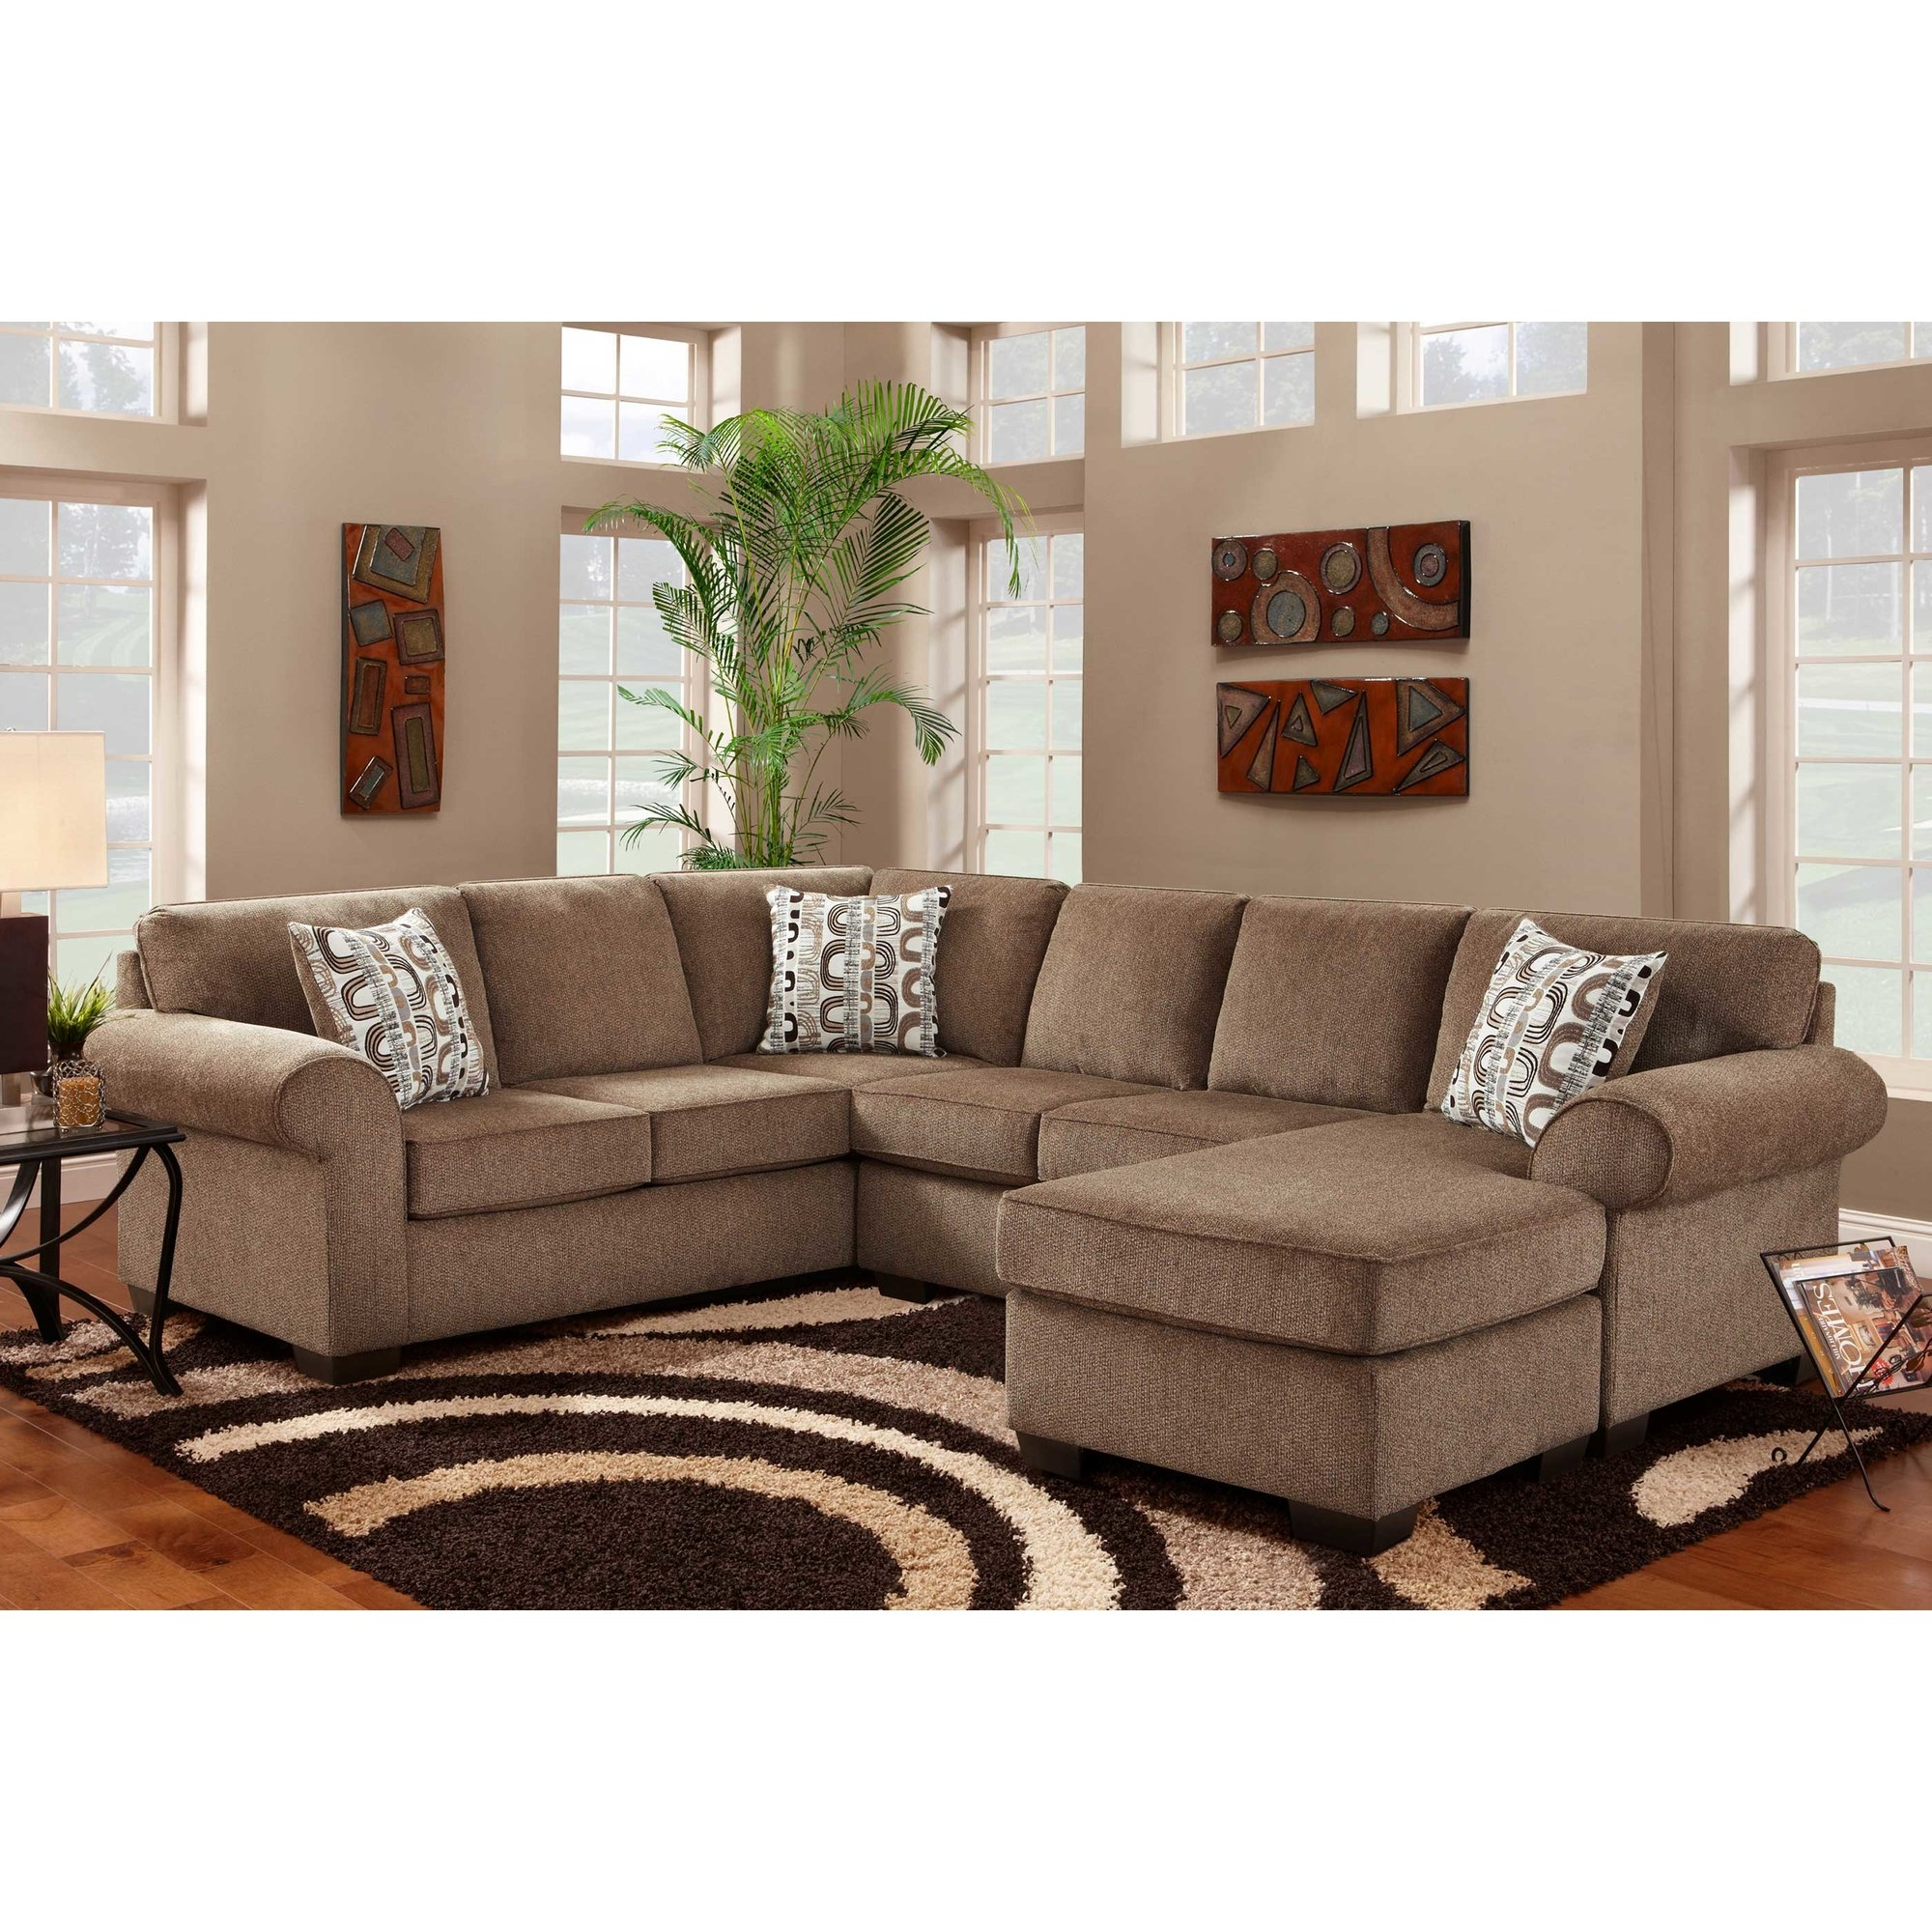 Chenille Sectional Sofas Youll Love Wayfair Regarding Chenille Sectional Sofas (#8 of 12)